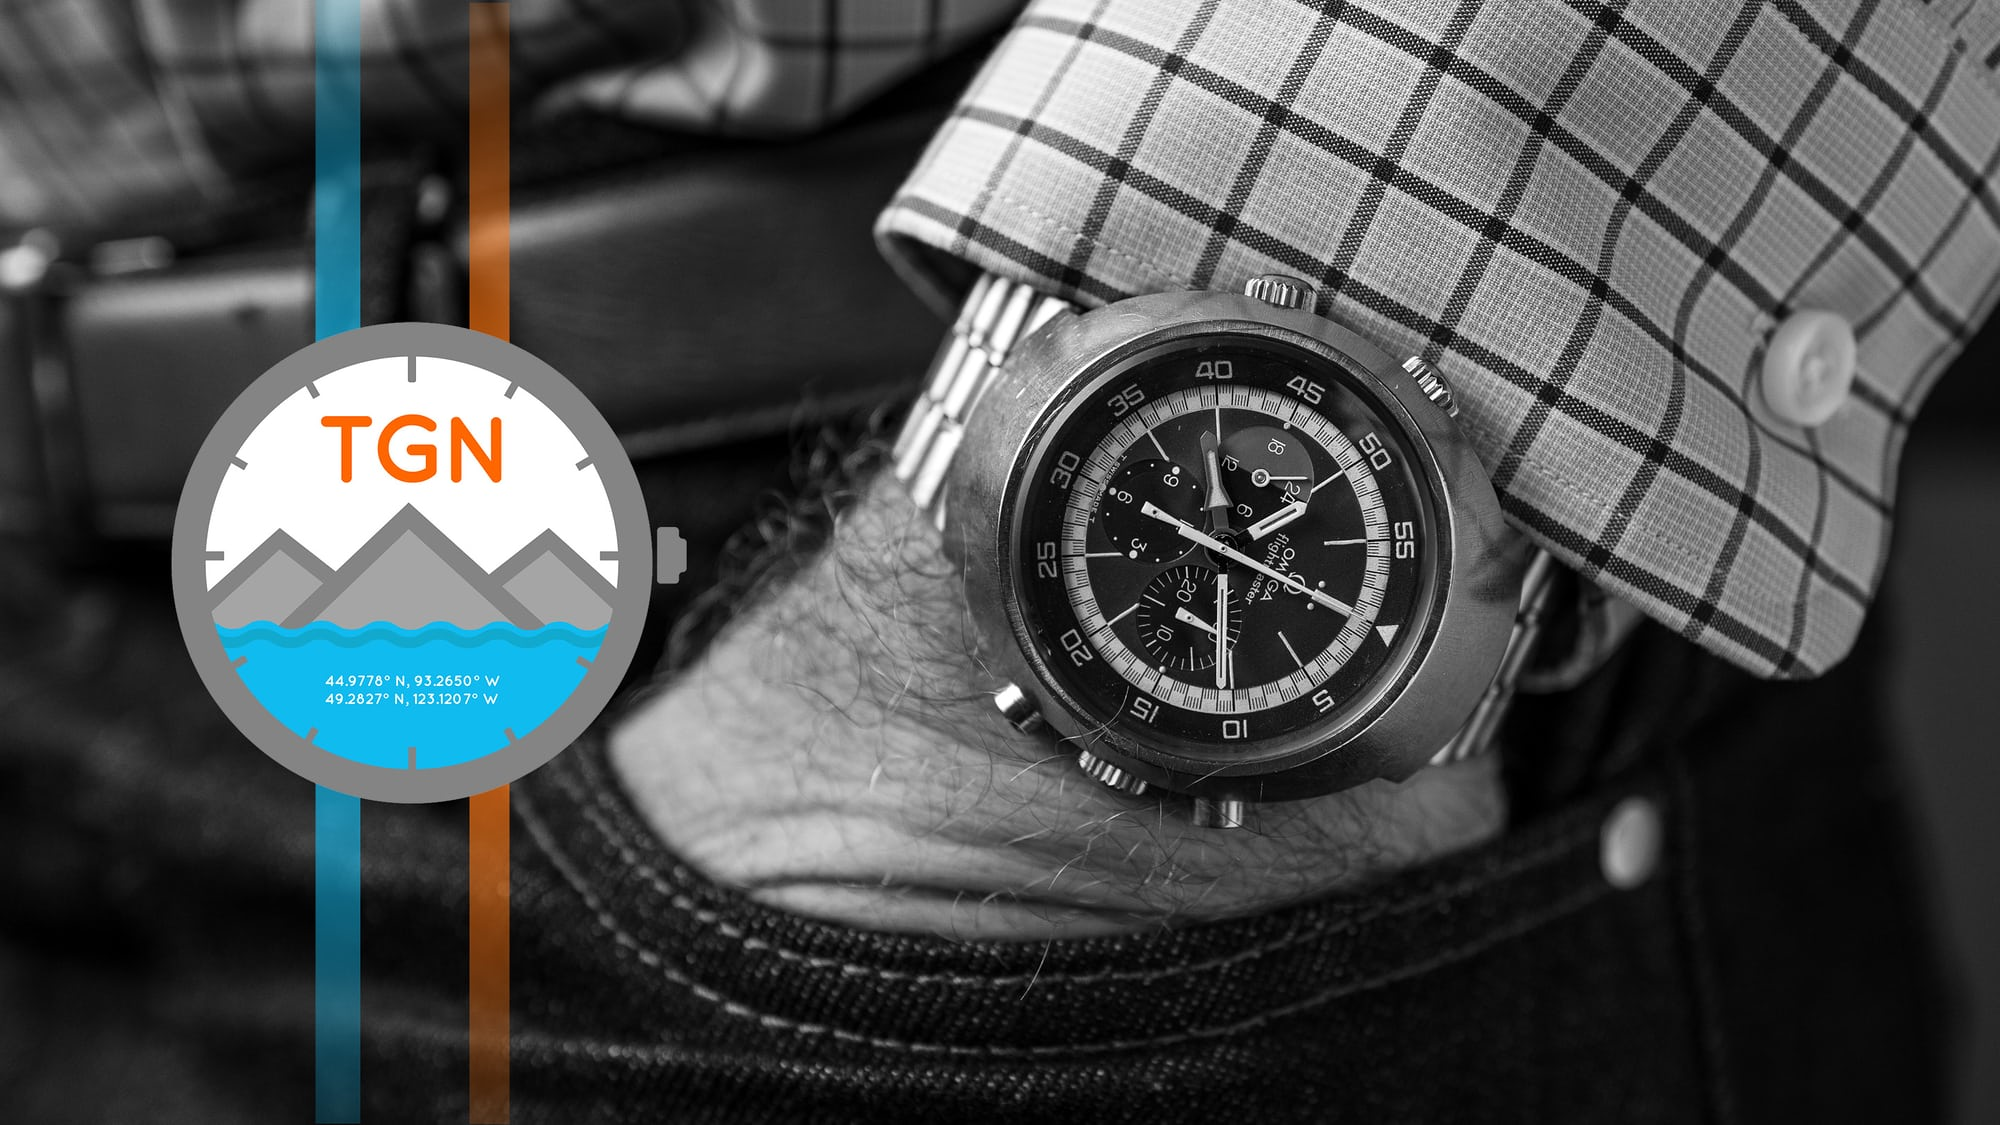 The Grey NATO: Episode 89: Our Favorite Watch Complications